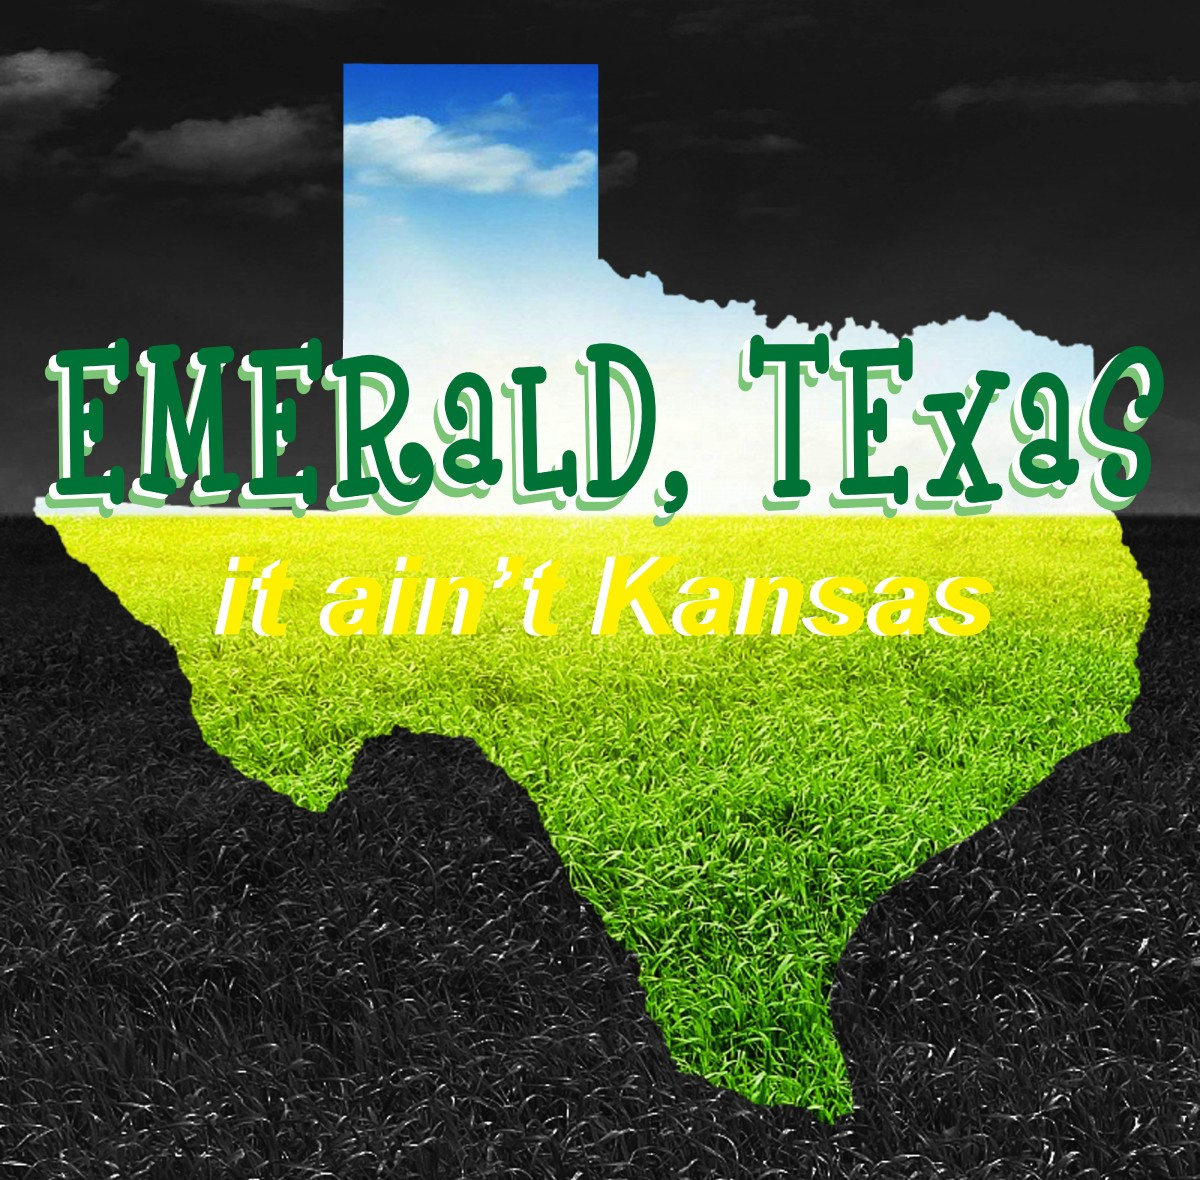 Emerld, Texas